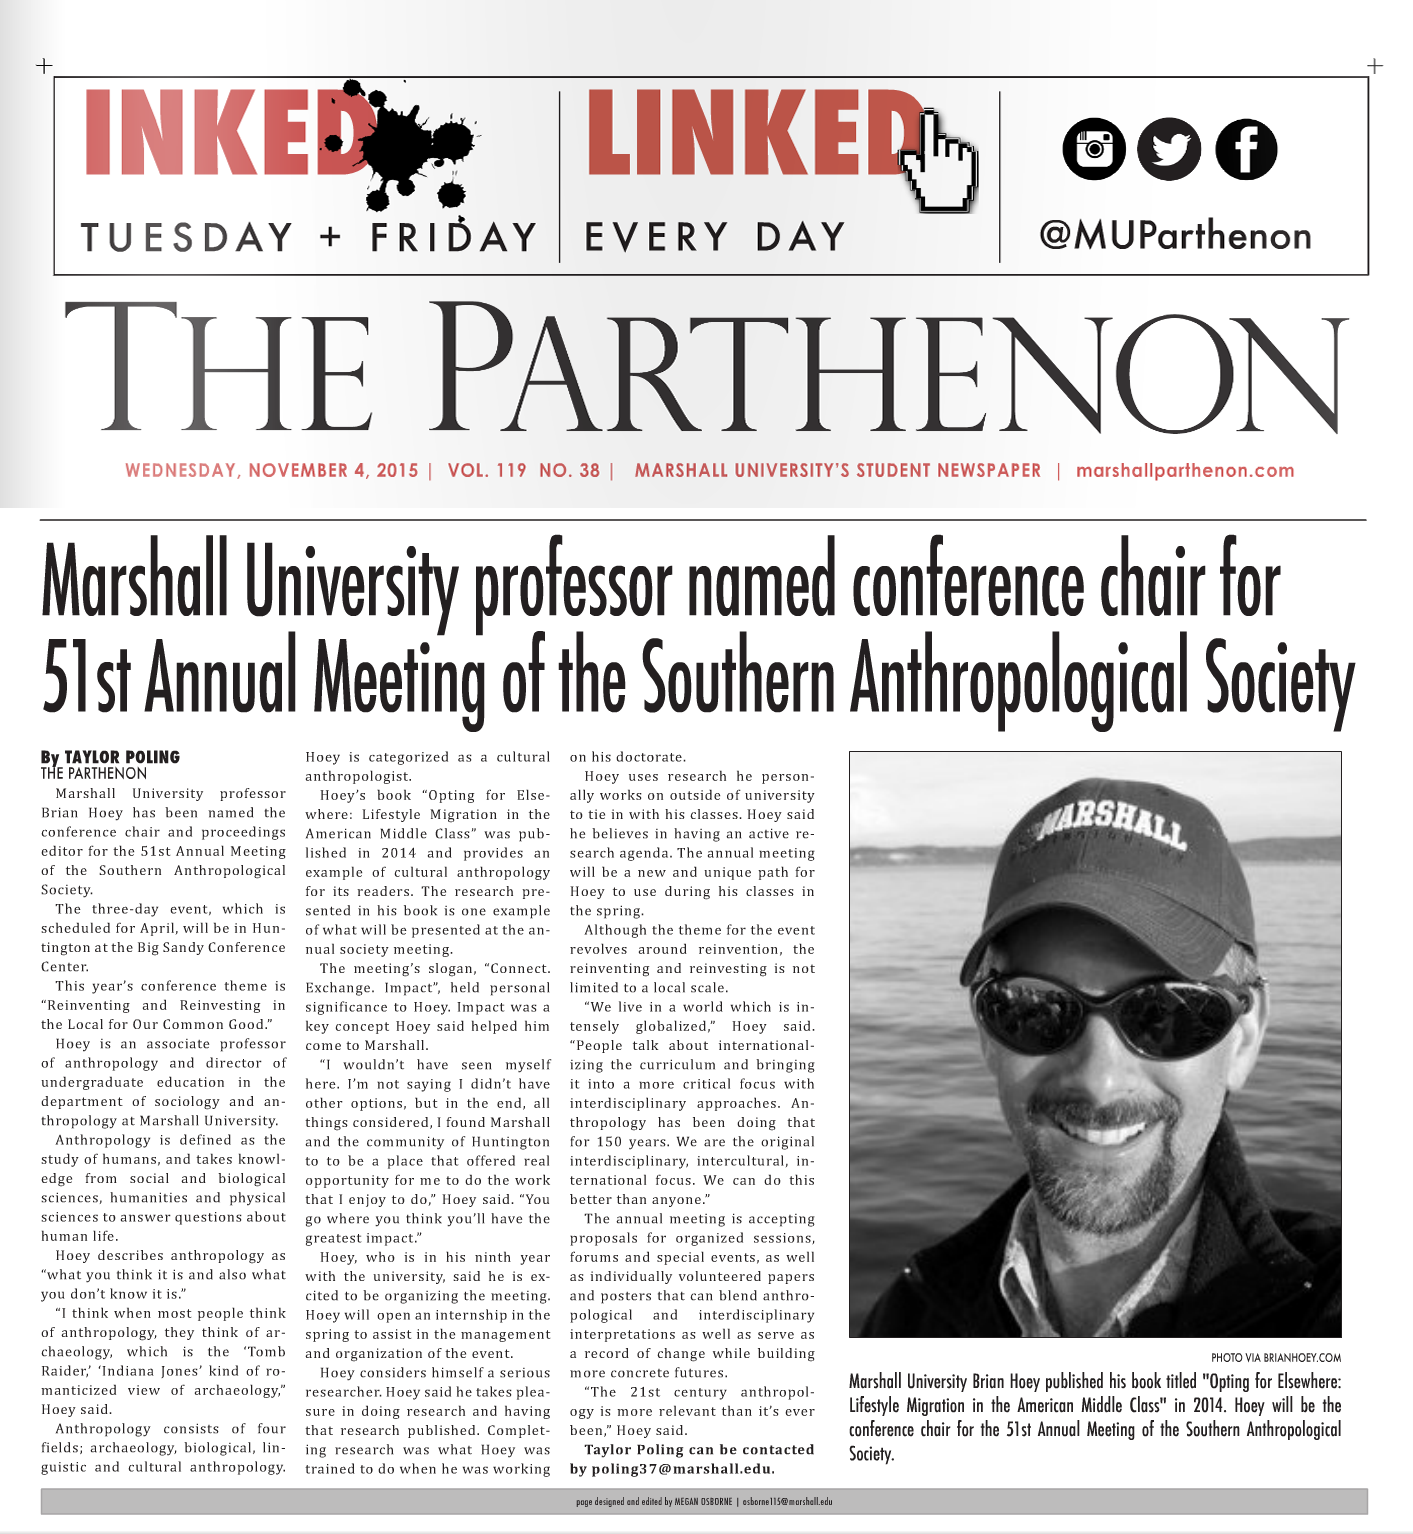 Parthenon article on Dr. Hoey's Position as Conference Chair for SAS 2016